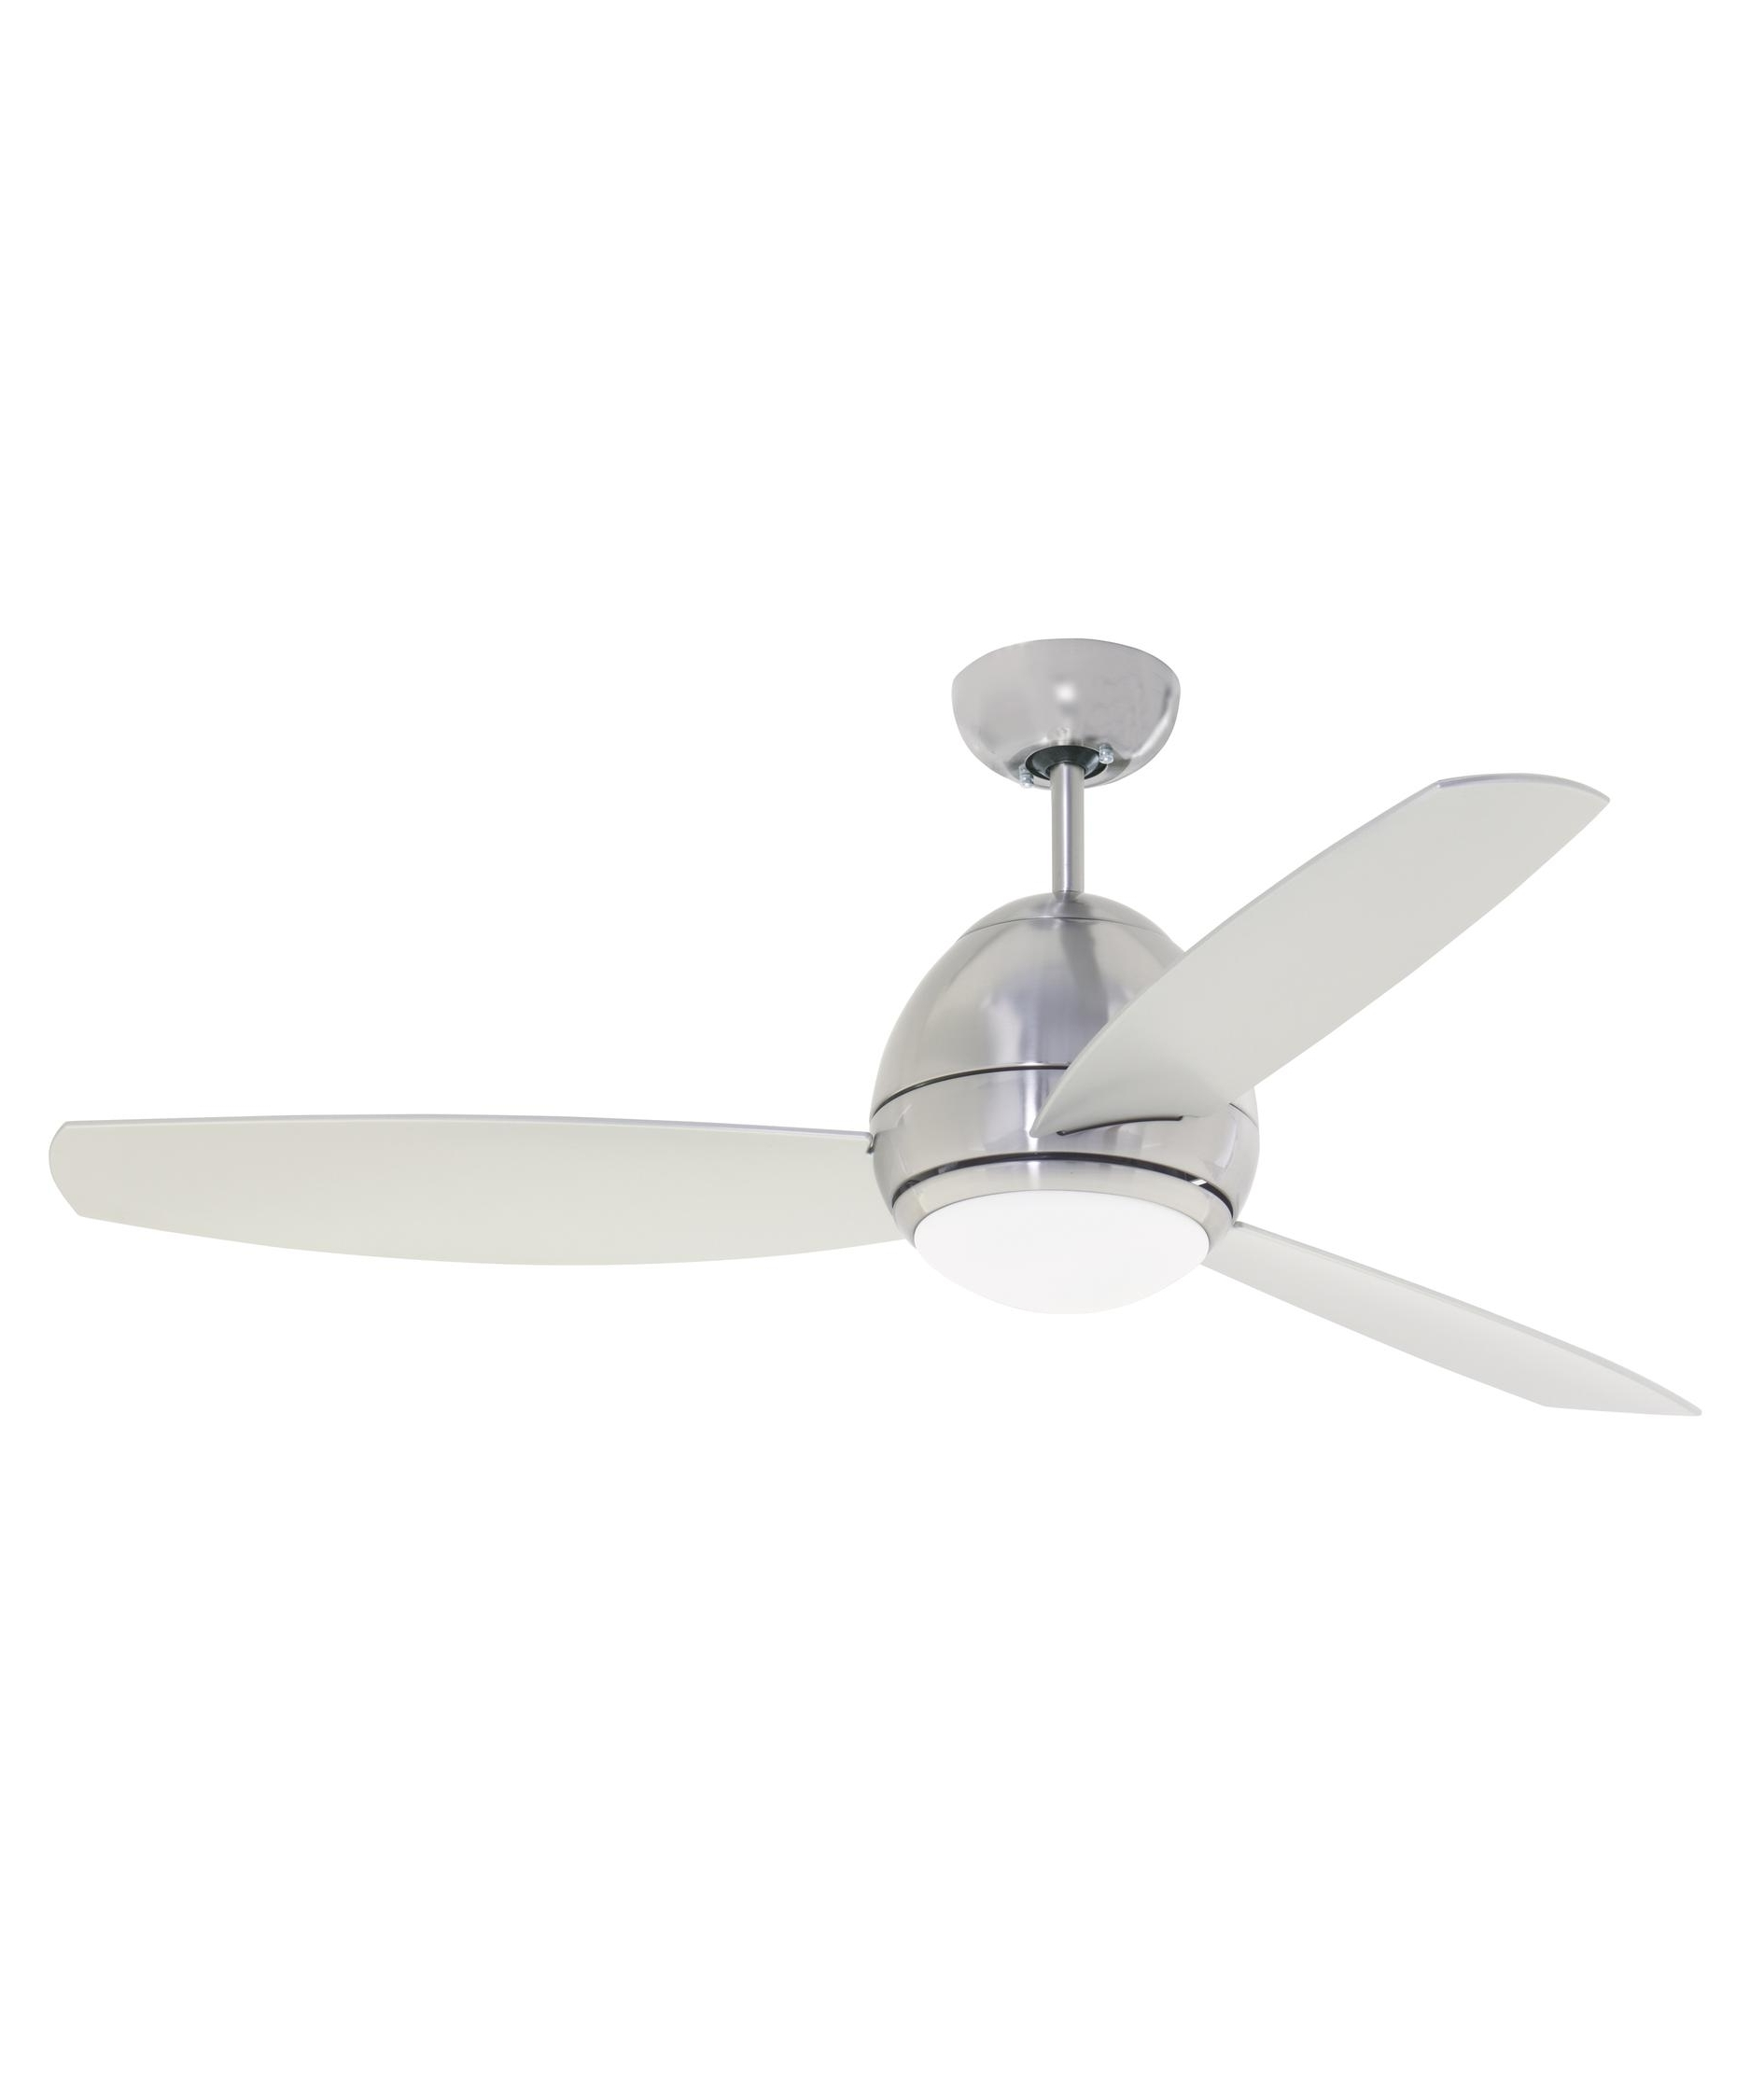 Famous Emerson Outdoor Ceiling Fans With Lights Pertaining To Emerson Cf252 Curva 52 Inch 3 Blade Ceiling Fan (View 10 of 20)